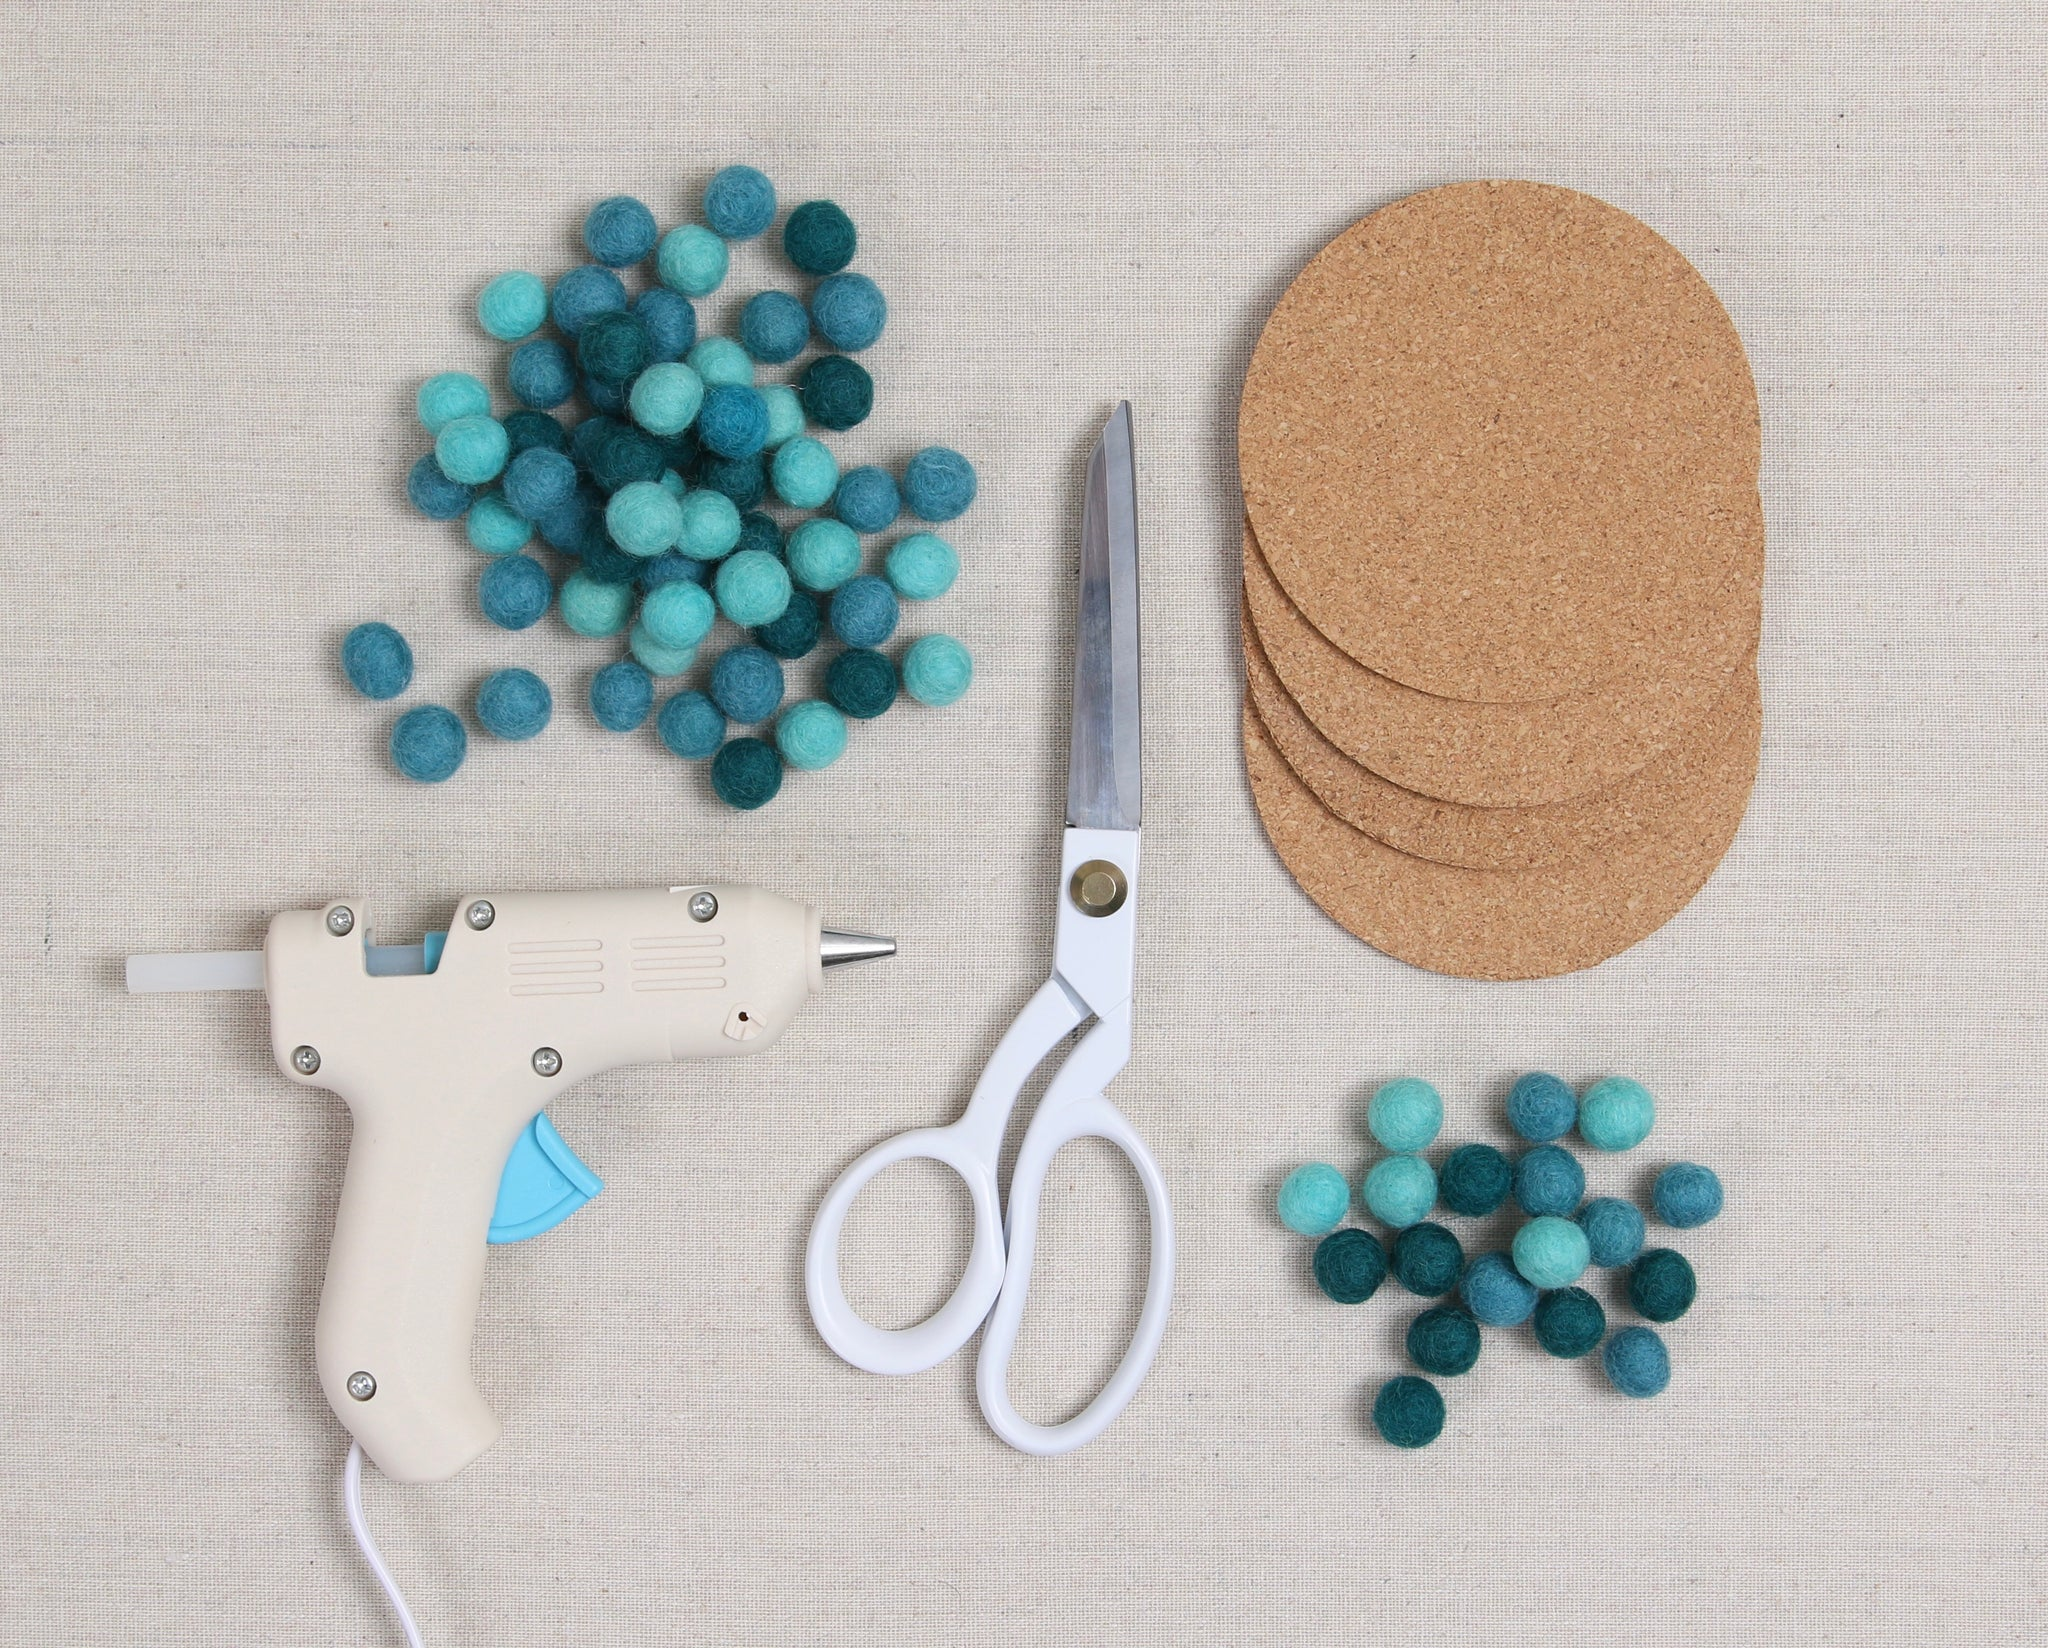 felt ball craft supplies